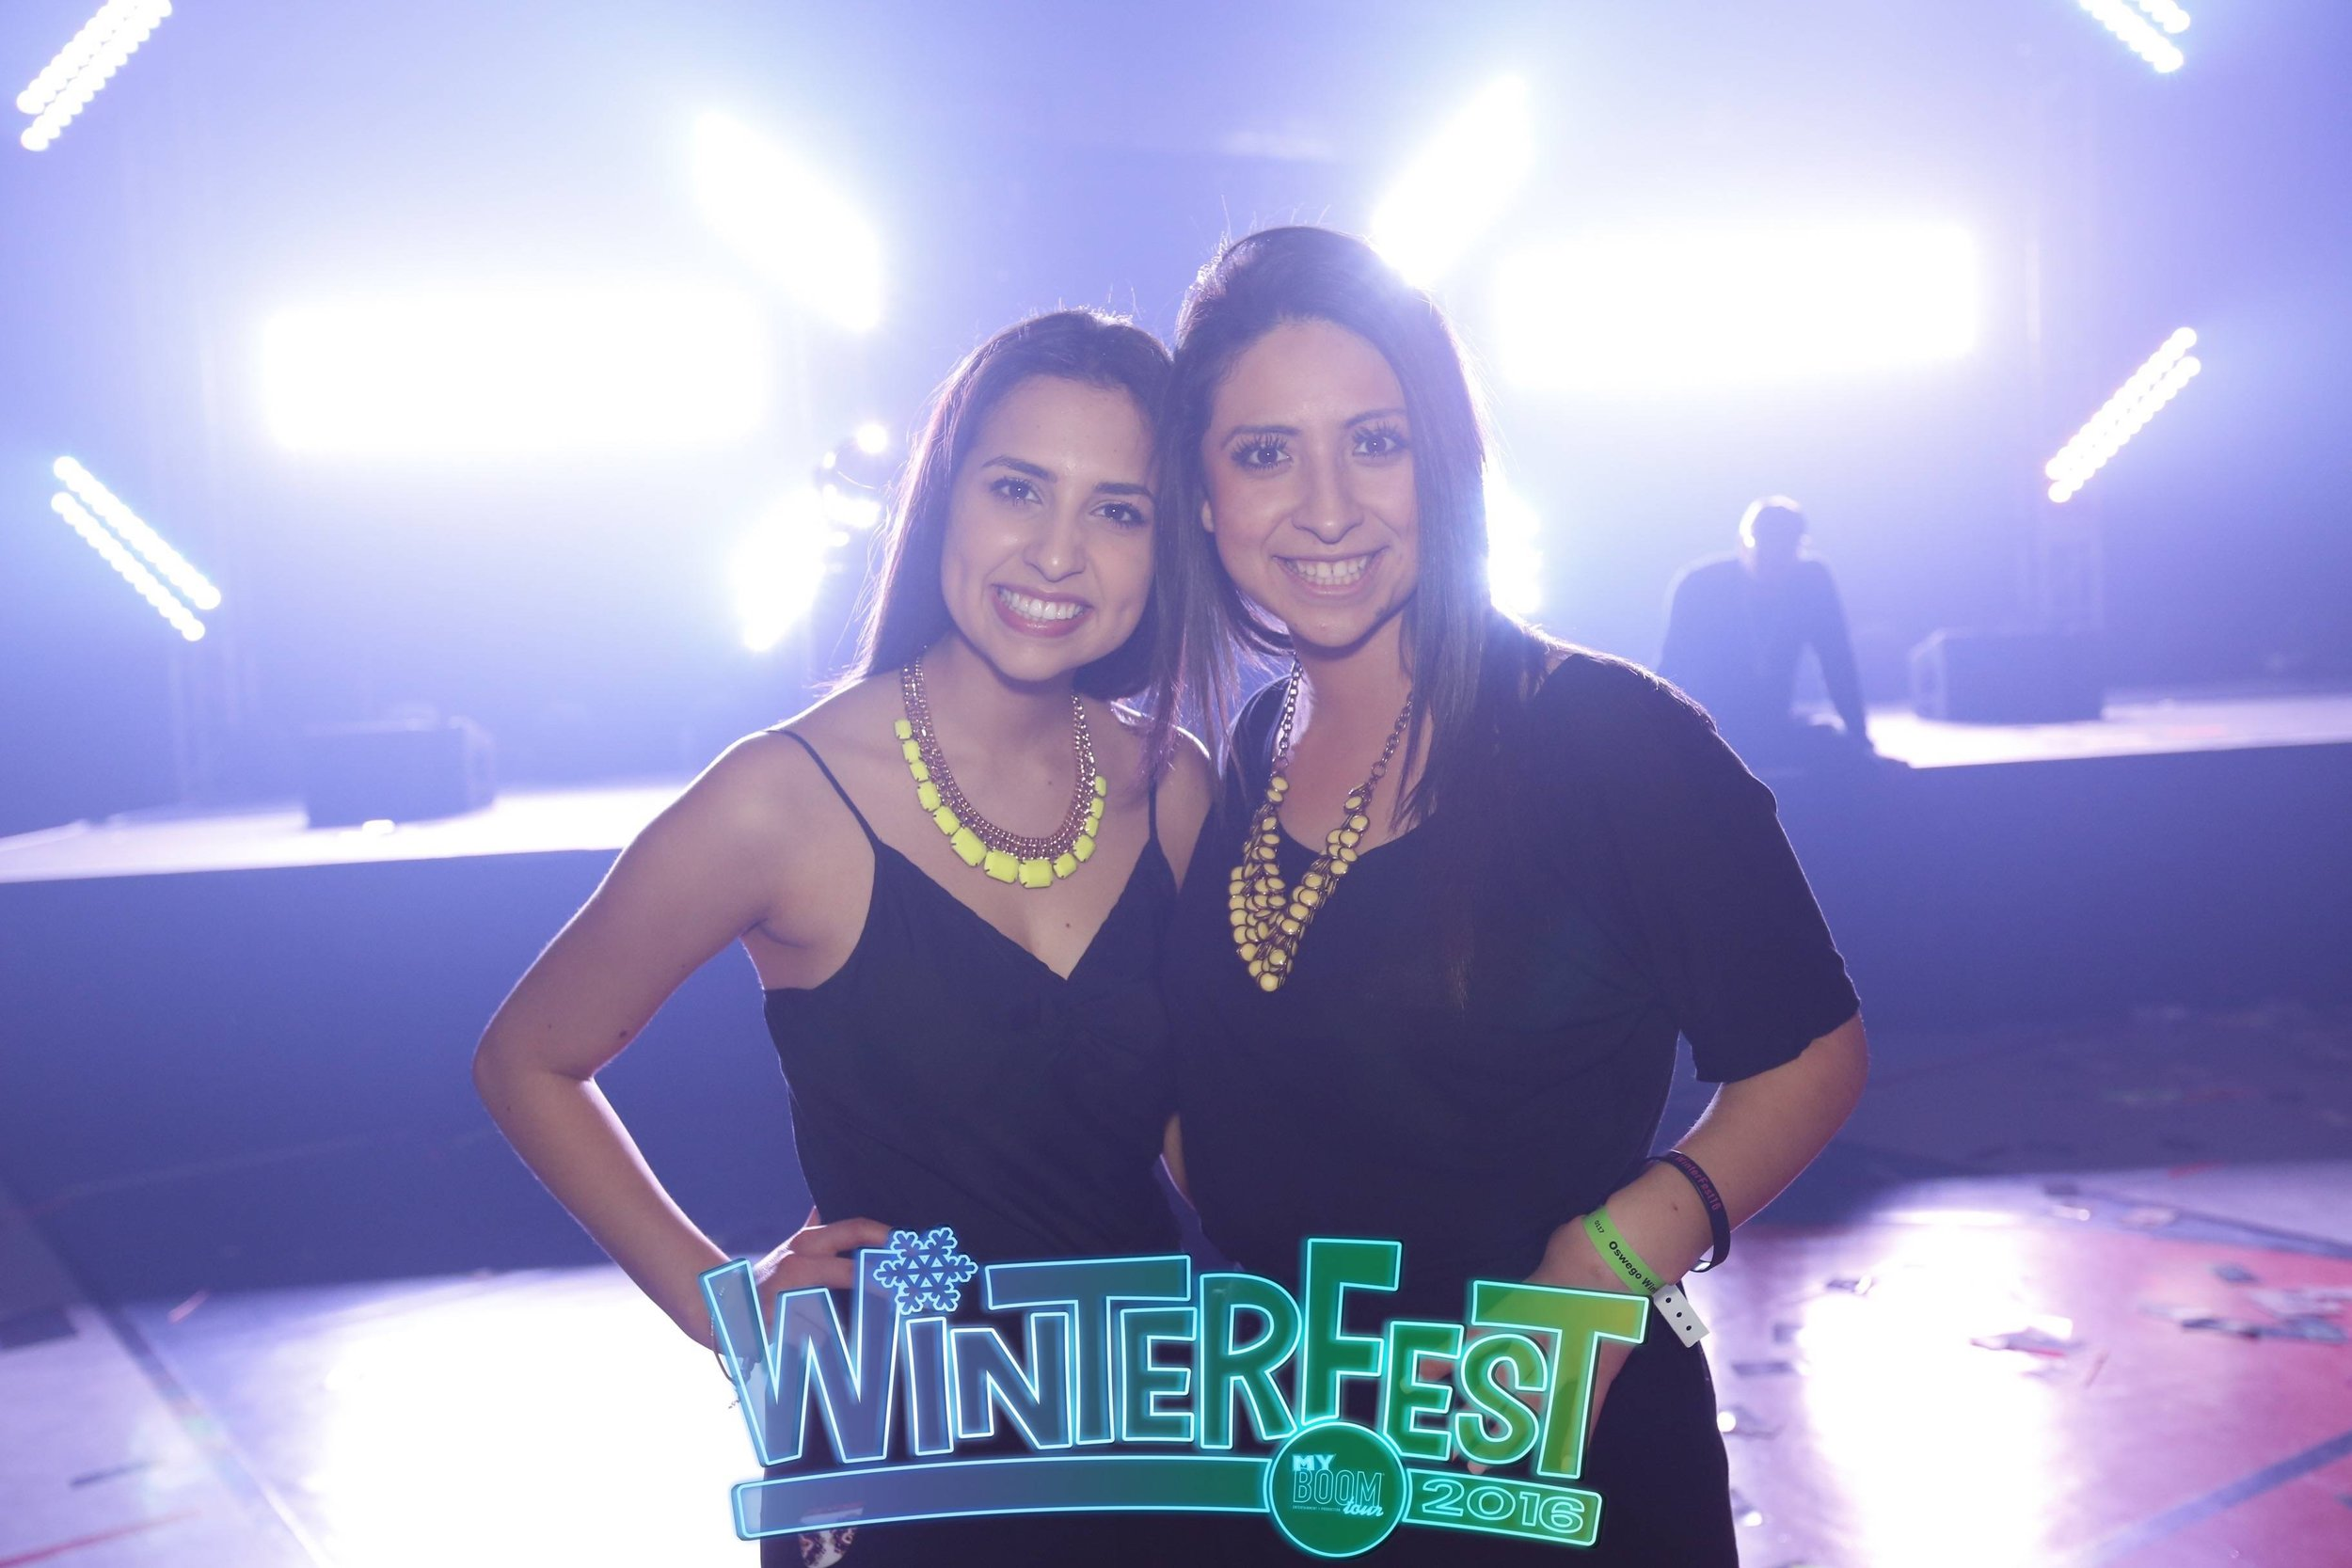 2016 Best of WinterFest - Dressy Apparel17.jpg